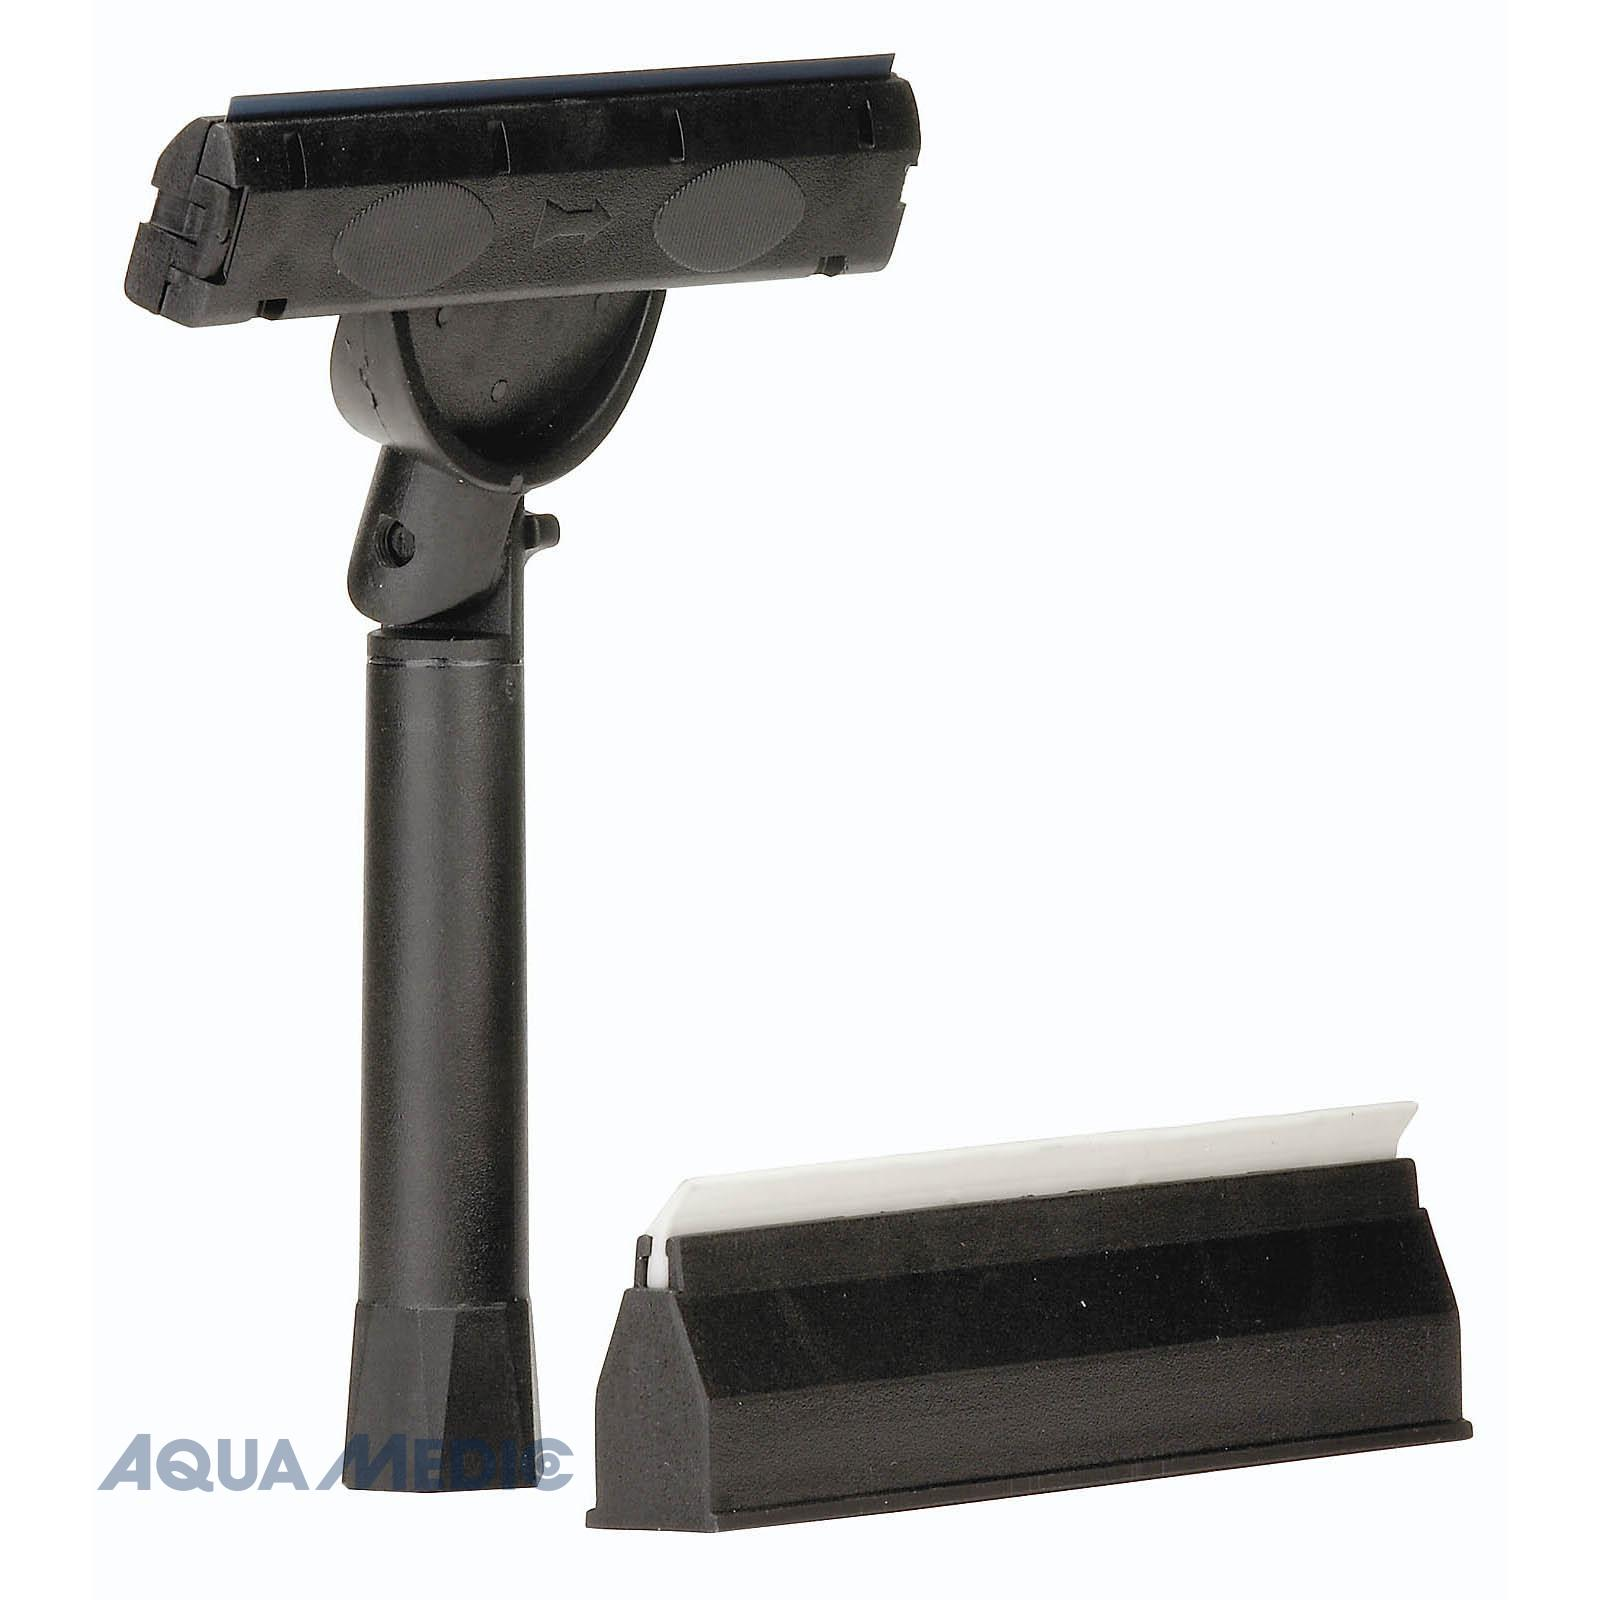 Aquamedic Aquarium Glass Cleaner